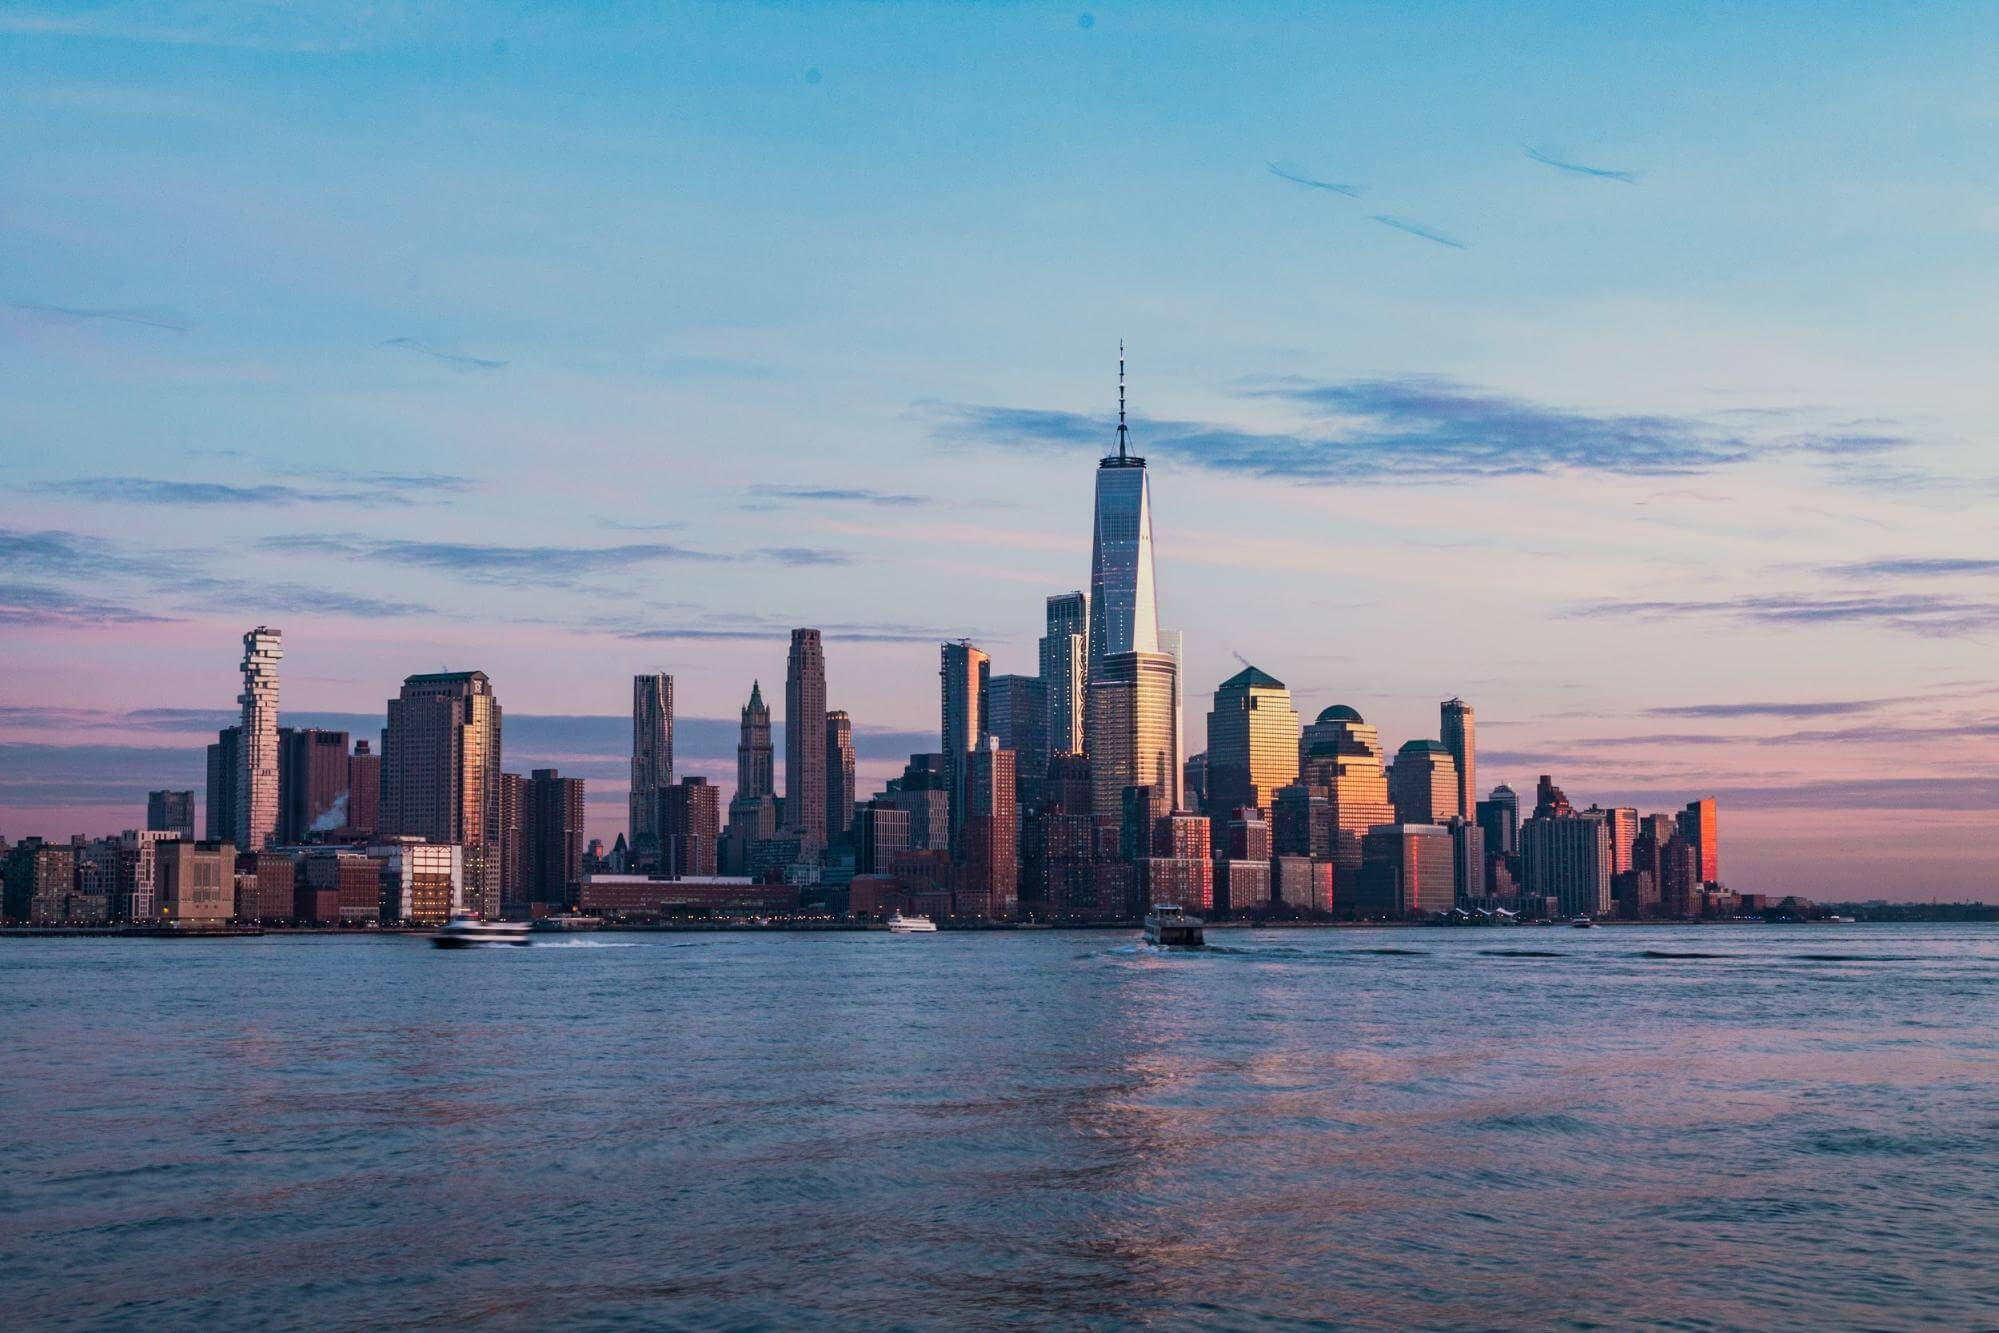 A Photo of Manhattan Island at Sunrise